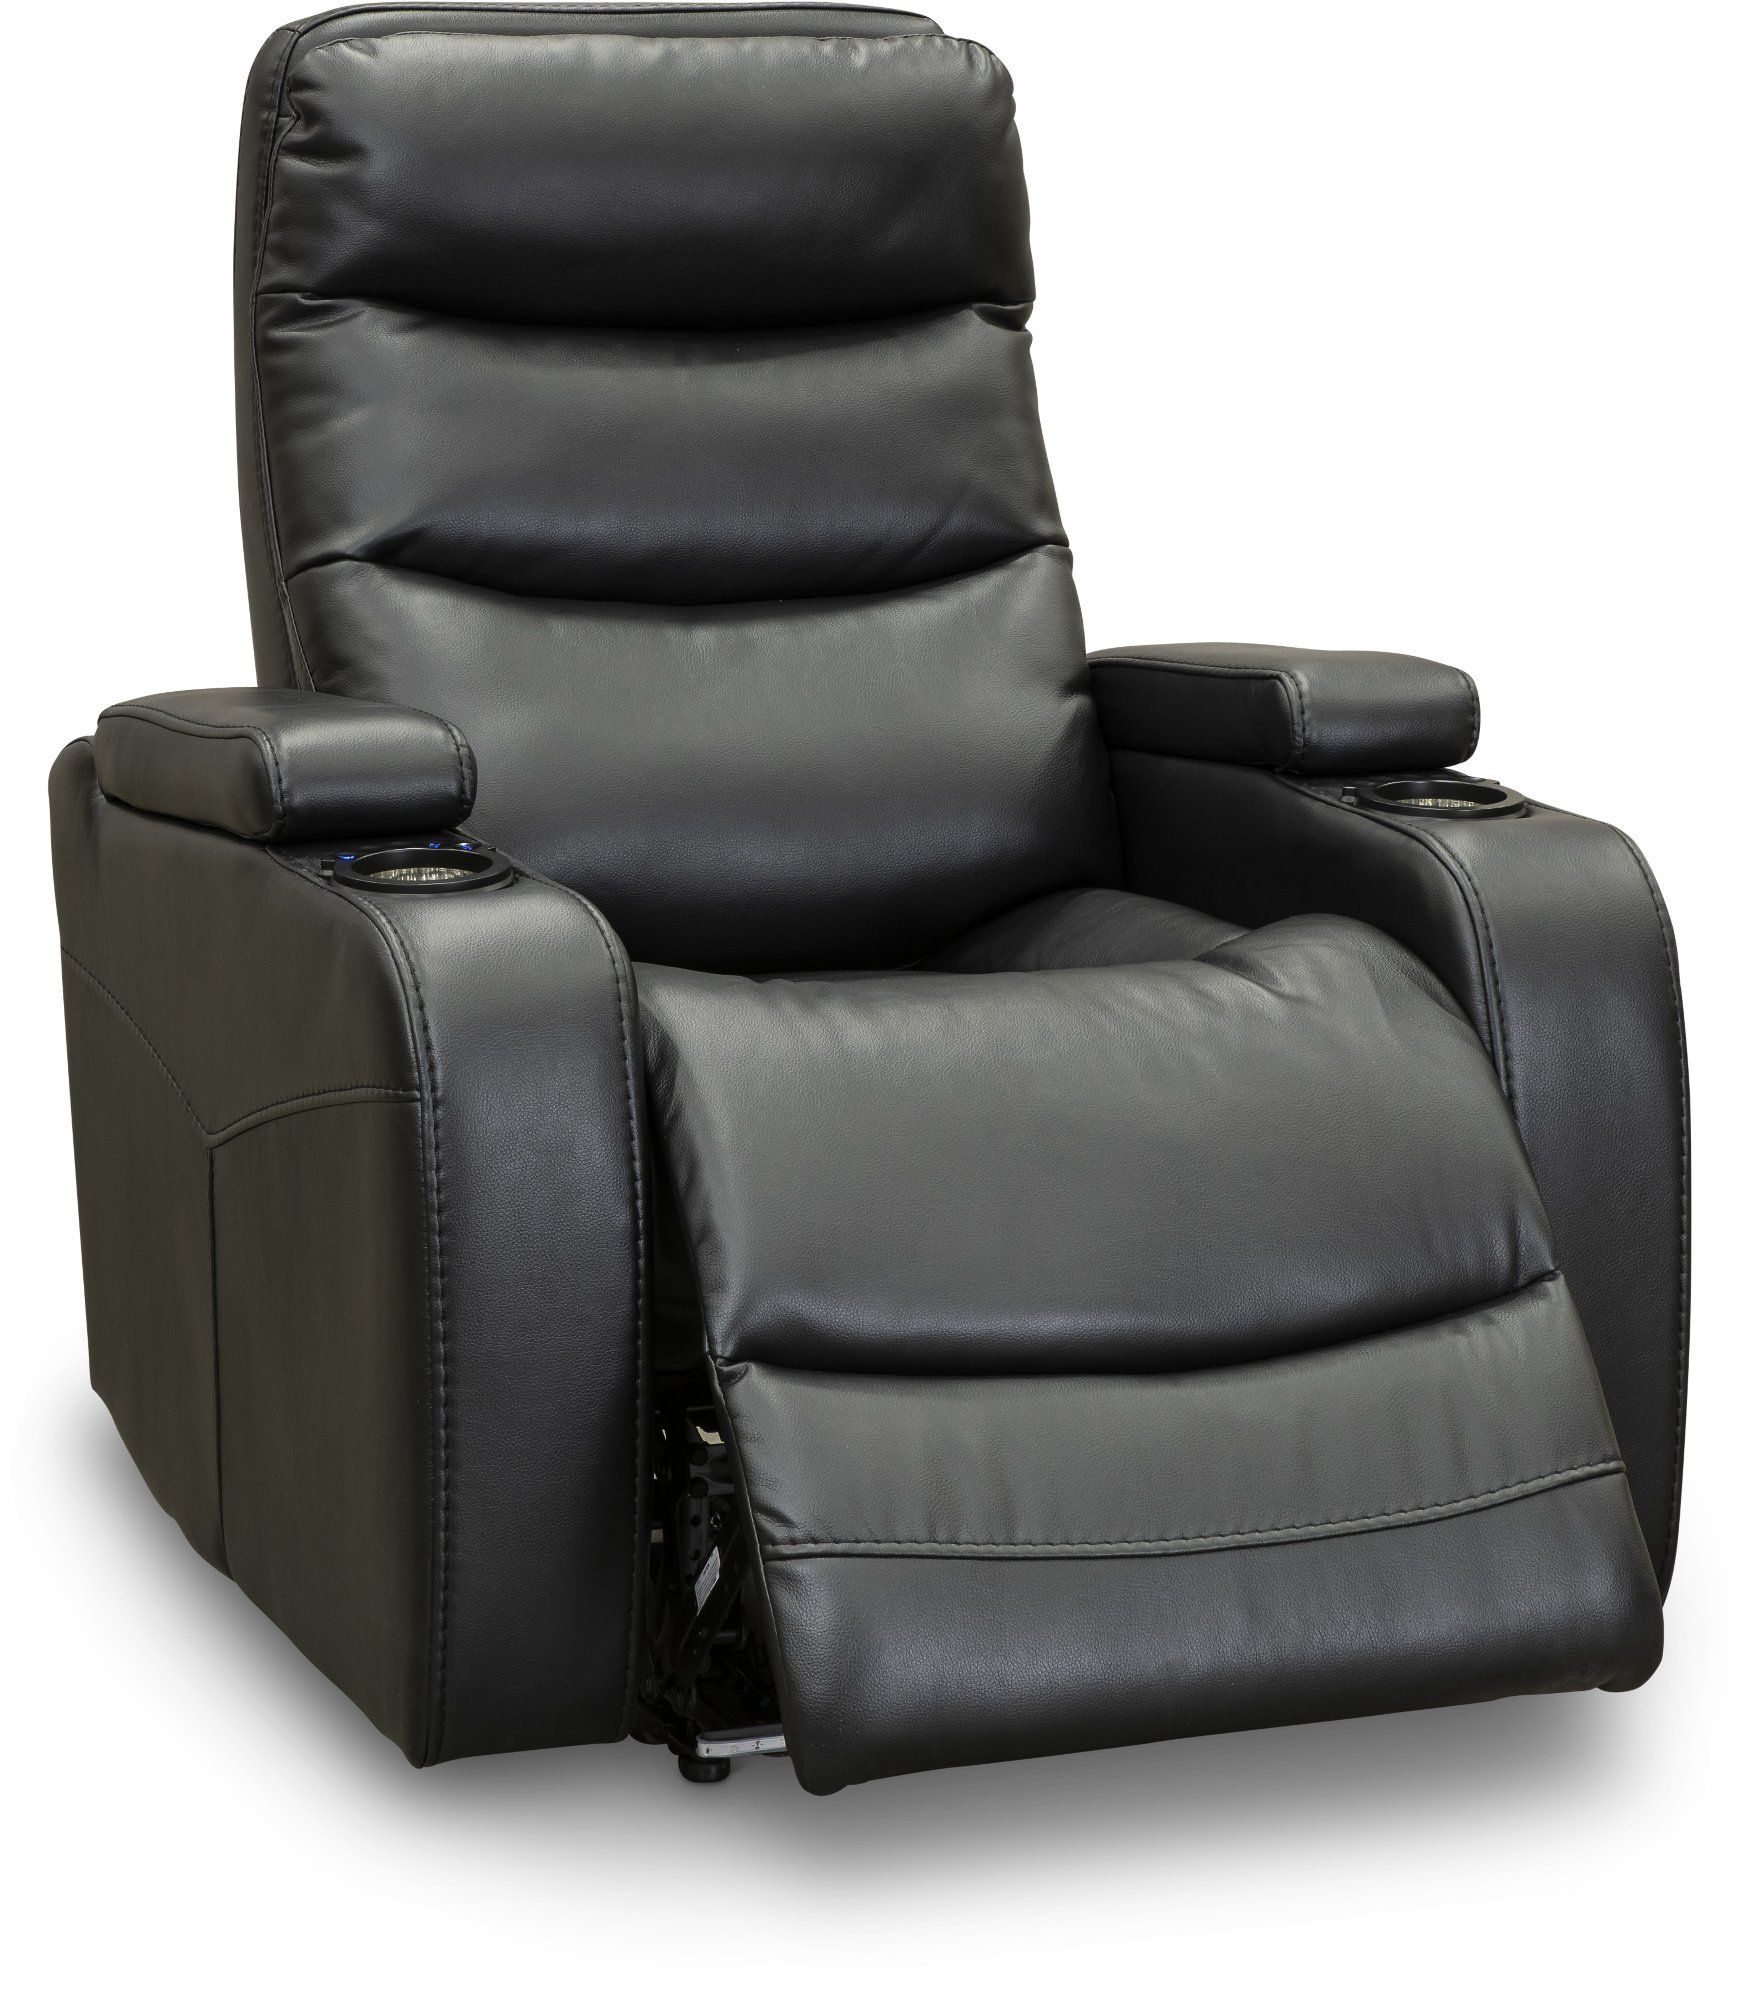 Black Power Home Theater Recliner Cinema Theater Recliners Recliner Power Recliners